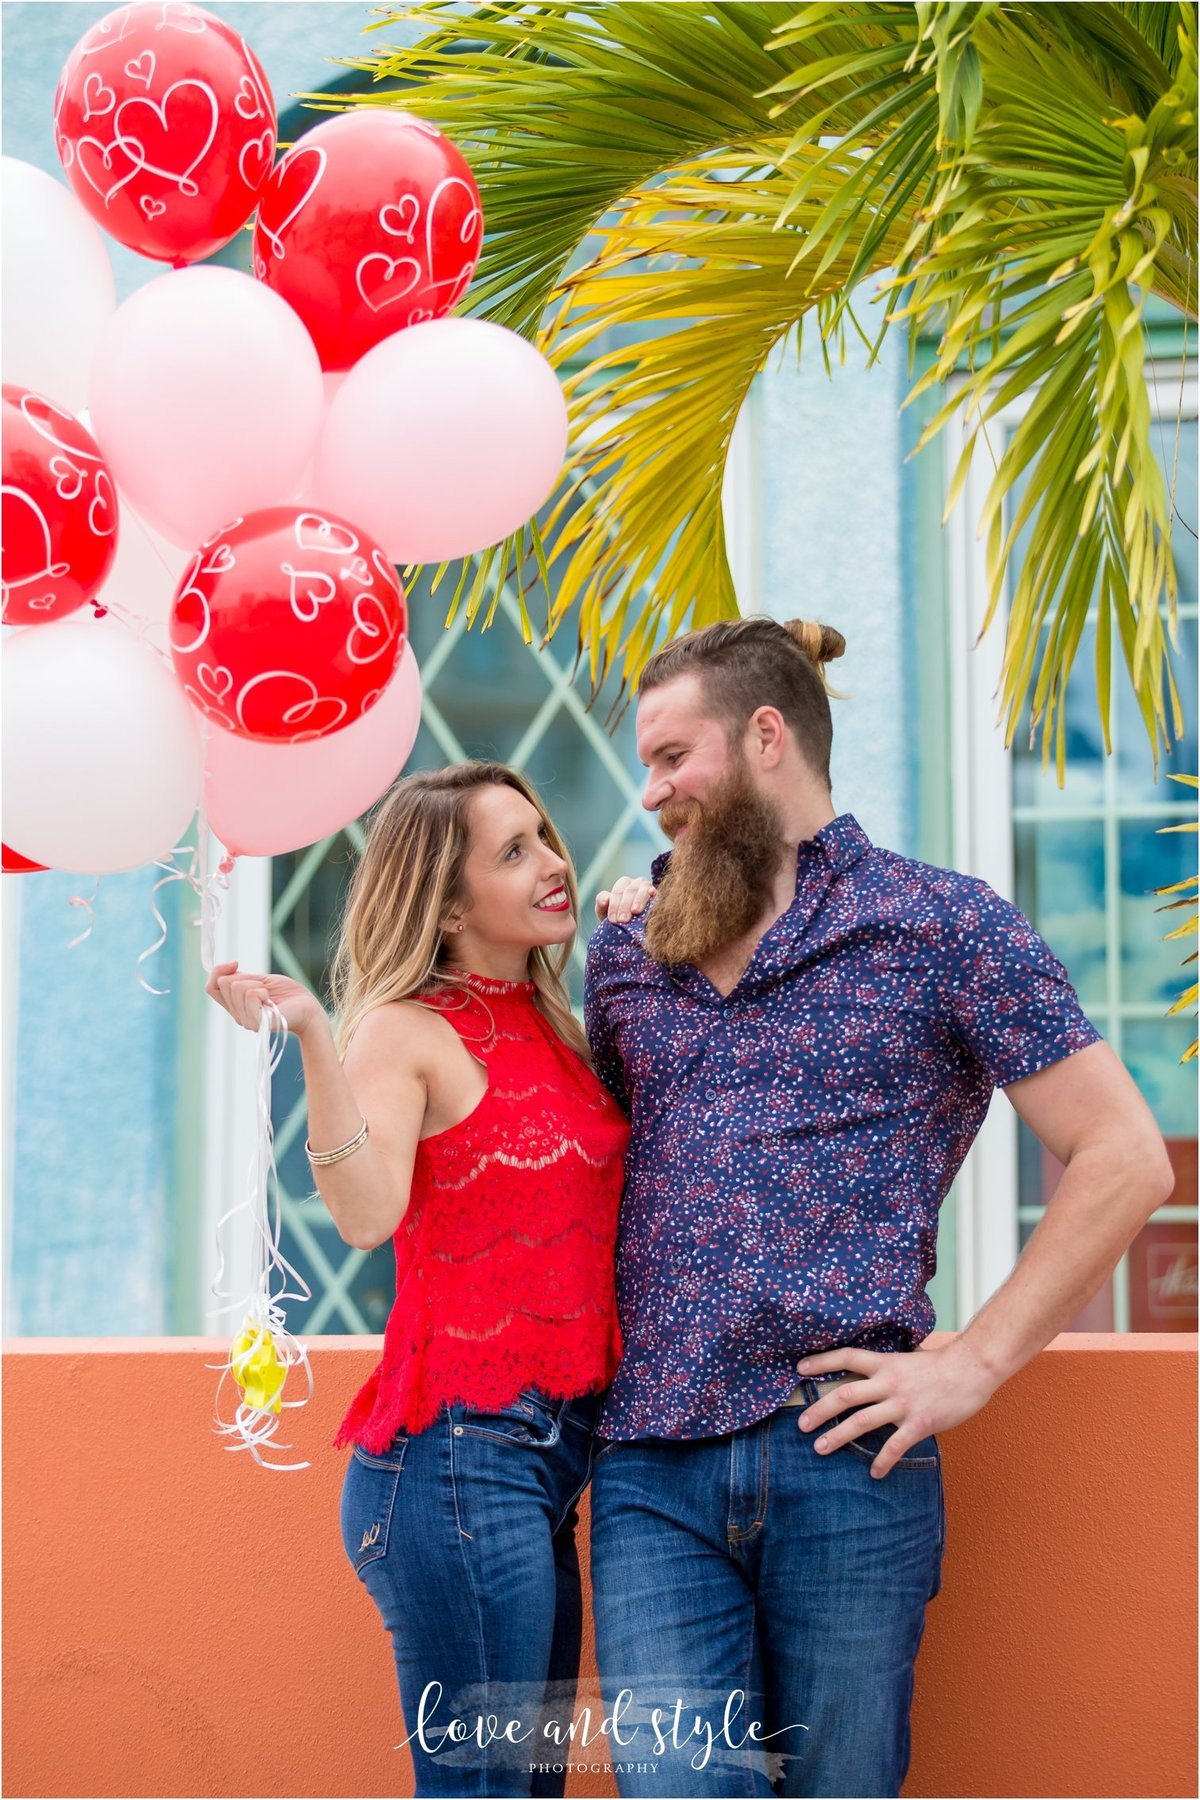 Engagement Photography in downtown Sarasota